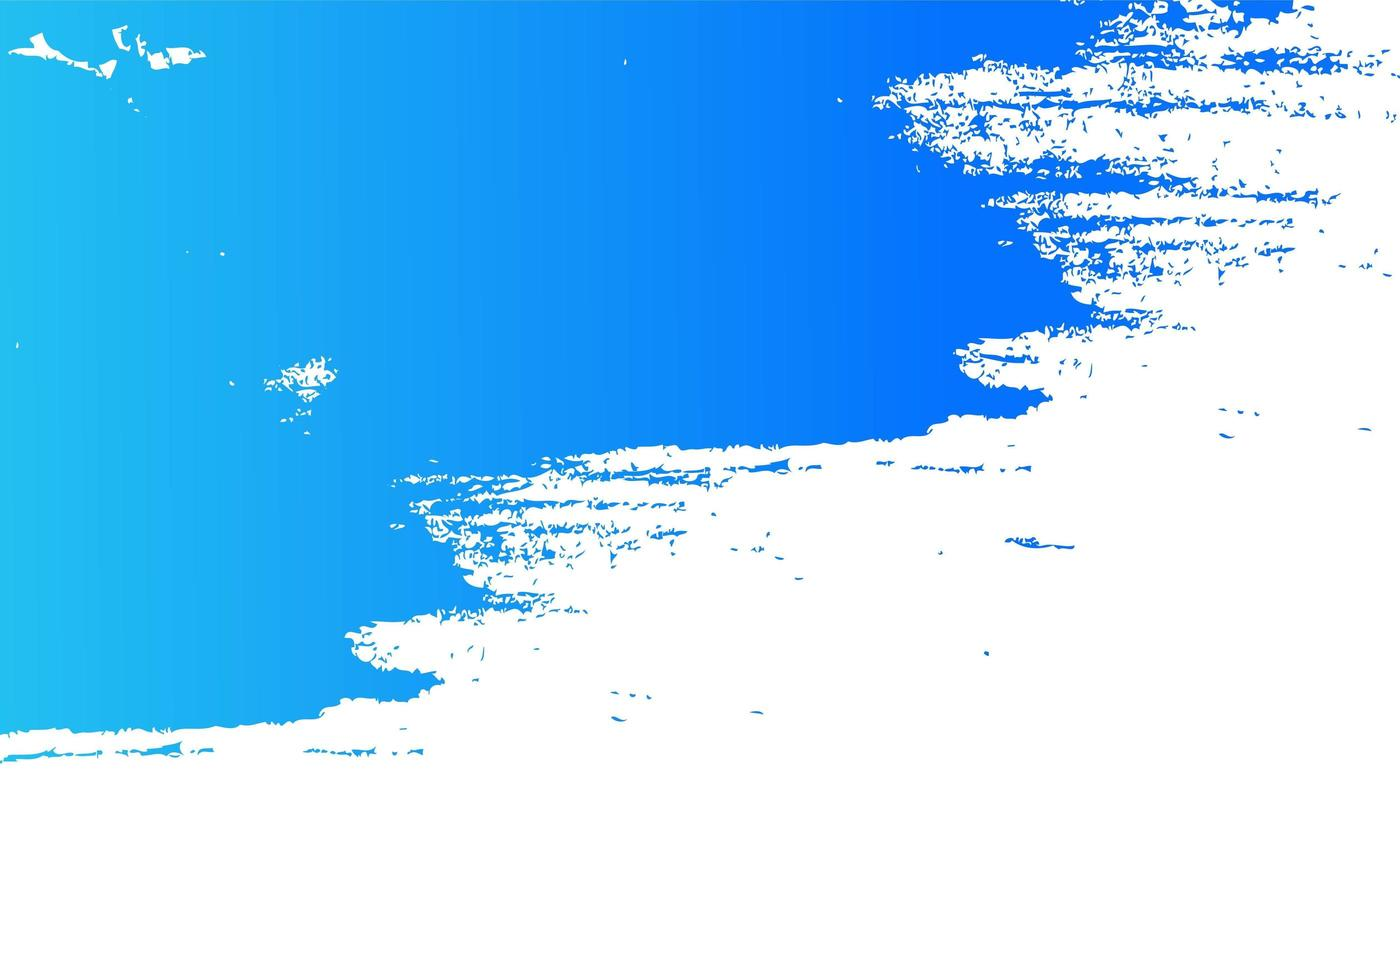 Abstract Blue Paint Stroke Background vector